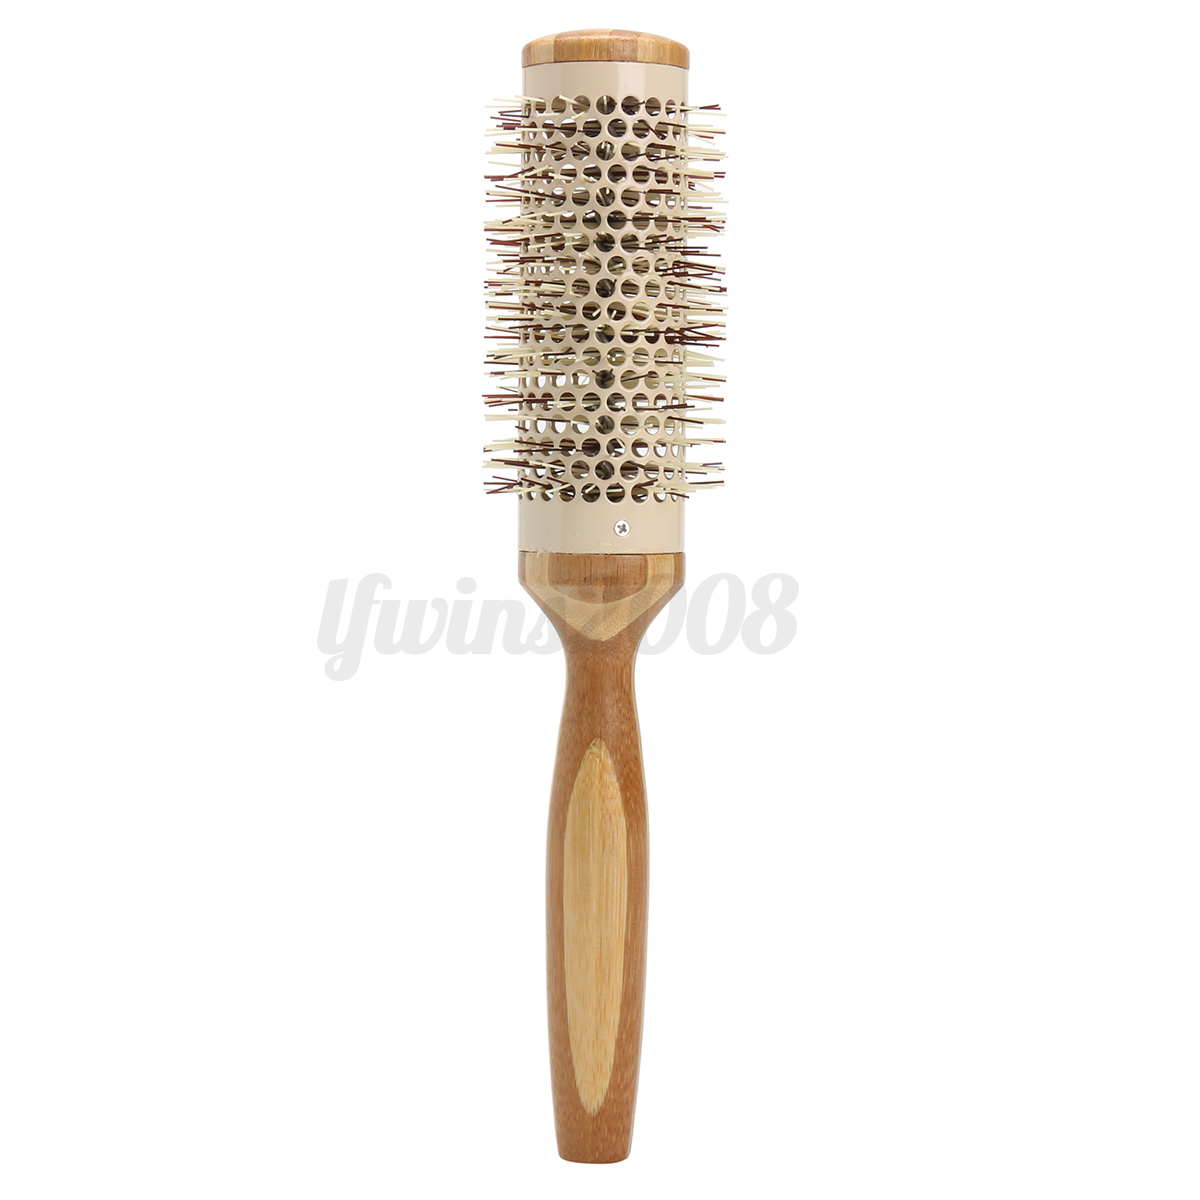 aluminum bois brosse ronde brushing fer peigne cheveux boucle antistatique ebay. Black Bedroom Furniture Sets. Home Design Ideas